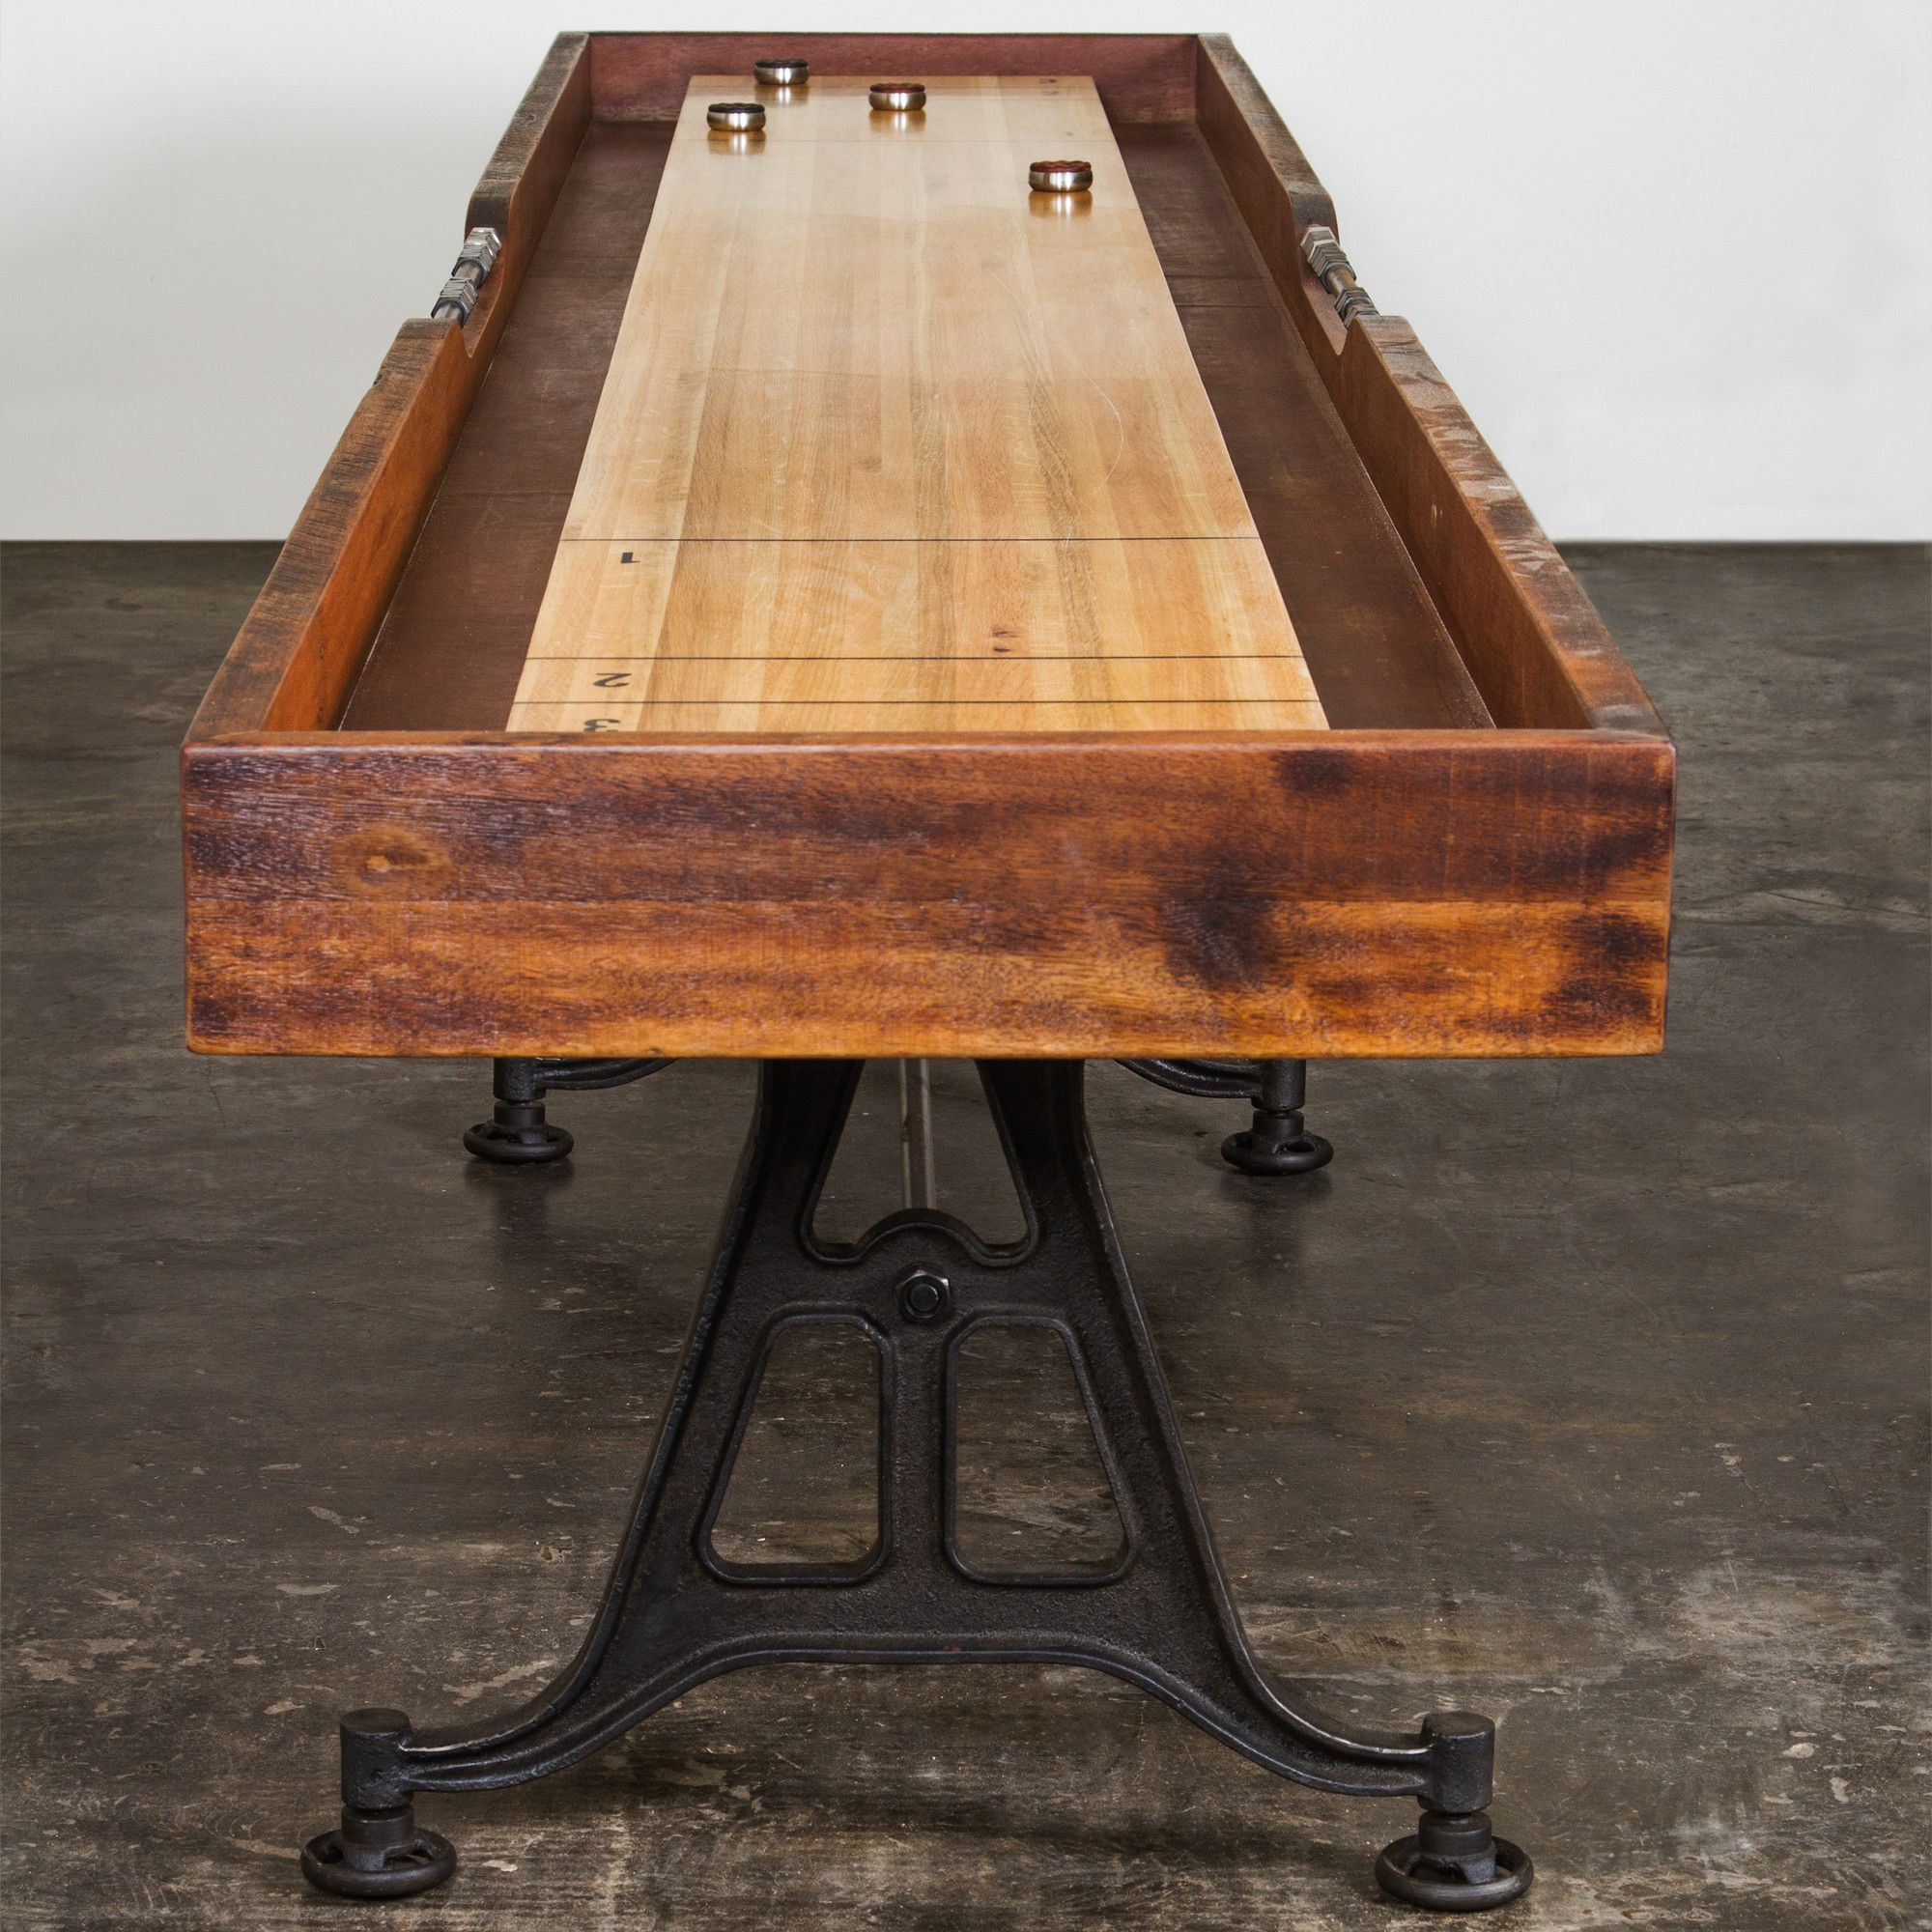 cool engine shuffleboard table miraculous ideas house for best sale lighting your plan decor image